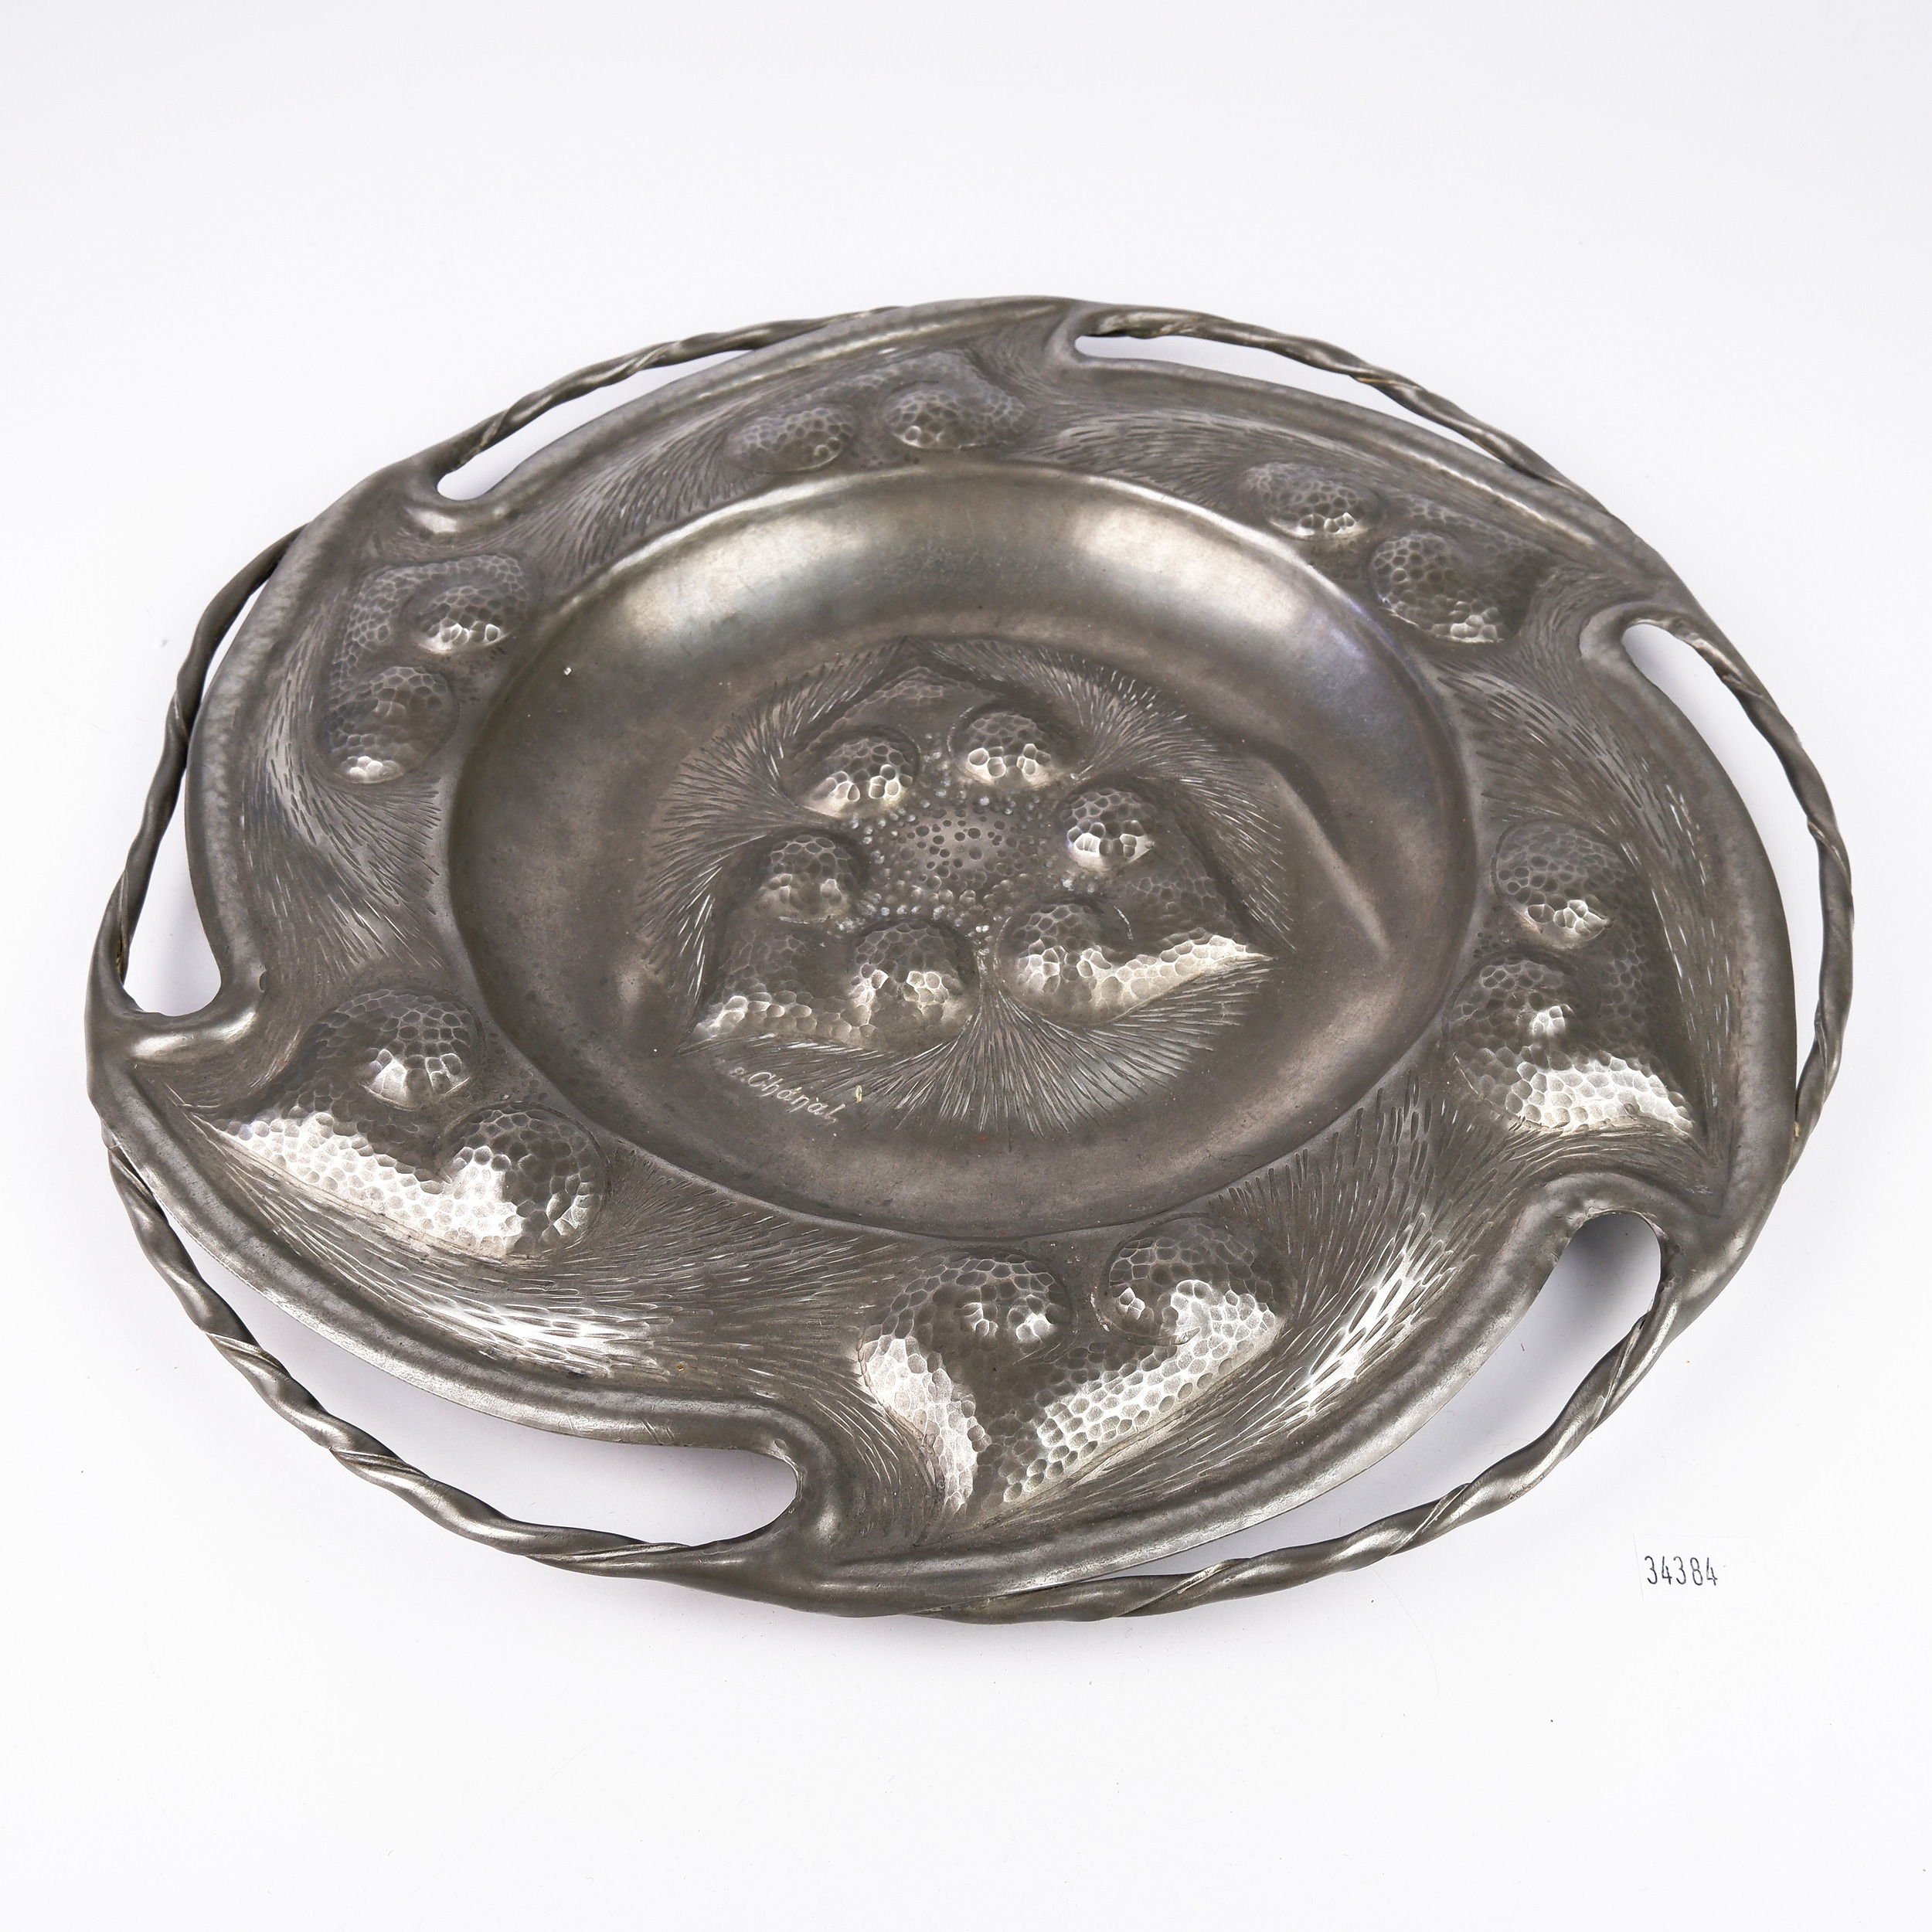 'Antique French Art Nouveau Hammered and Hand Wrought Pewter Charger Signed by Alice and Eugene Louis Chanal'